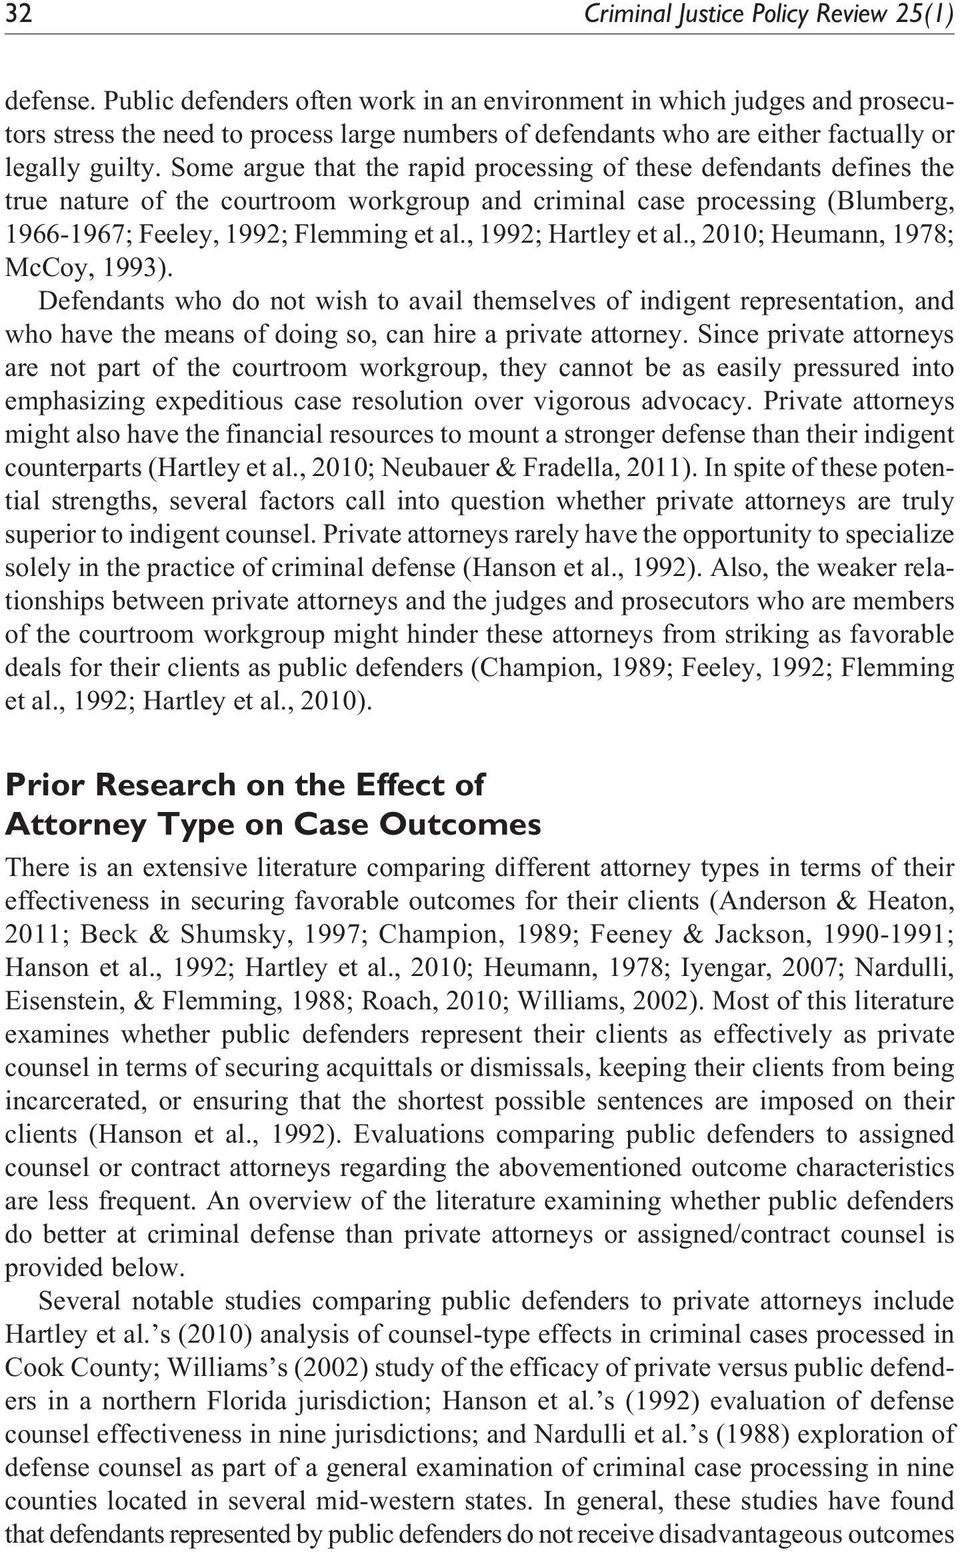 Some argue that the rapid processing of these defendants defines the true nature of the courtroom workgroup and criminal case processing (Blumberg, 1966-1967; Feeley, 1992; Flemming et al.